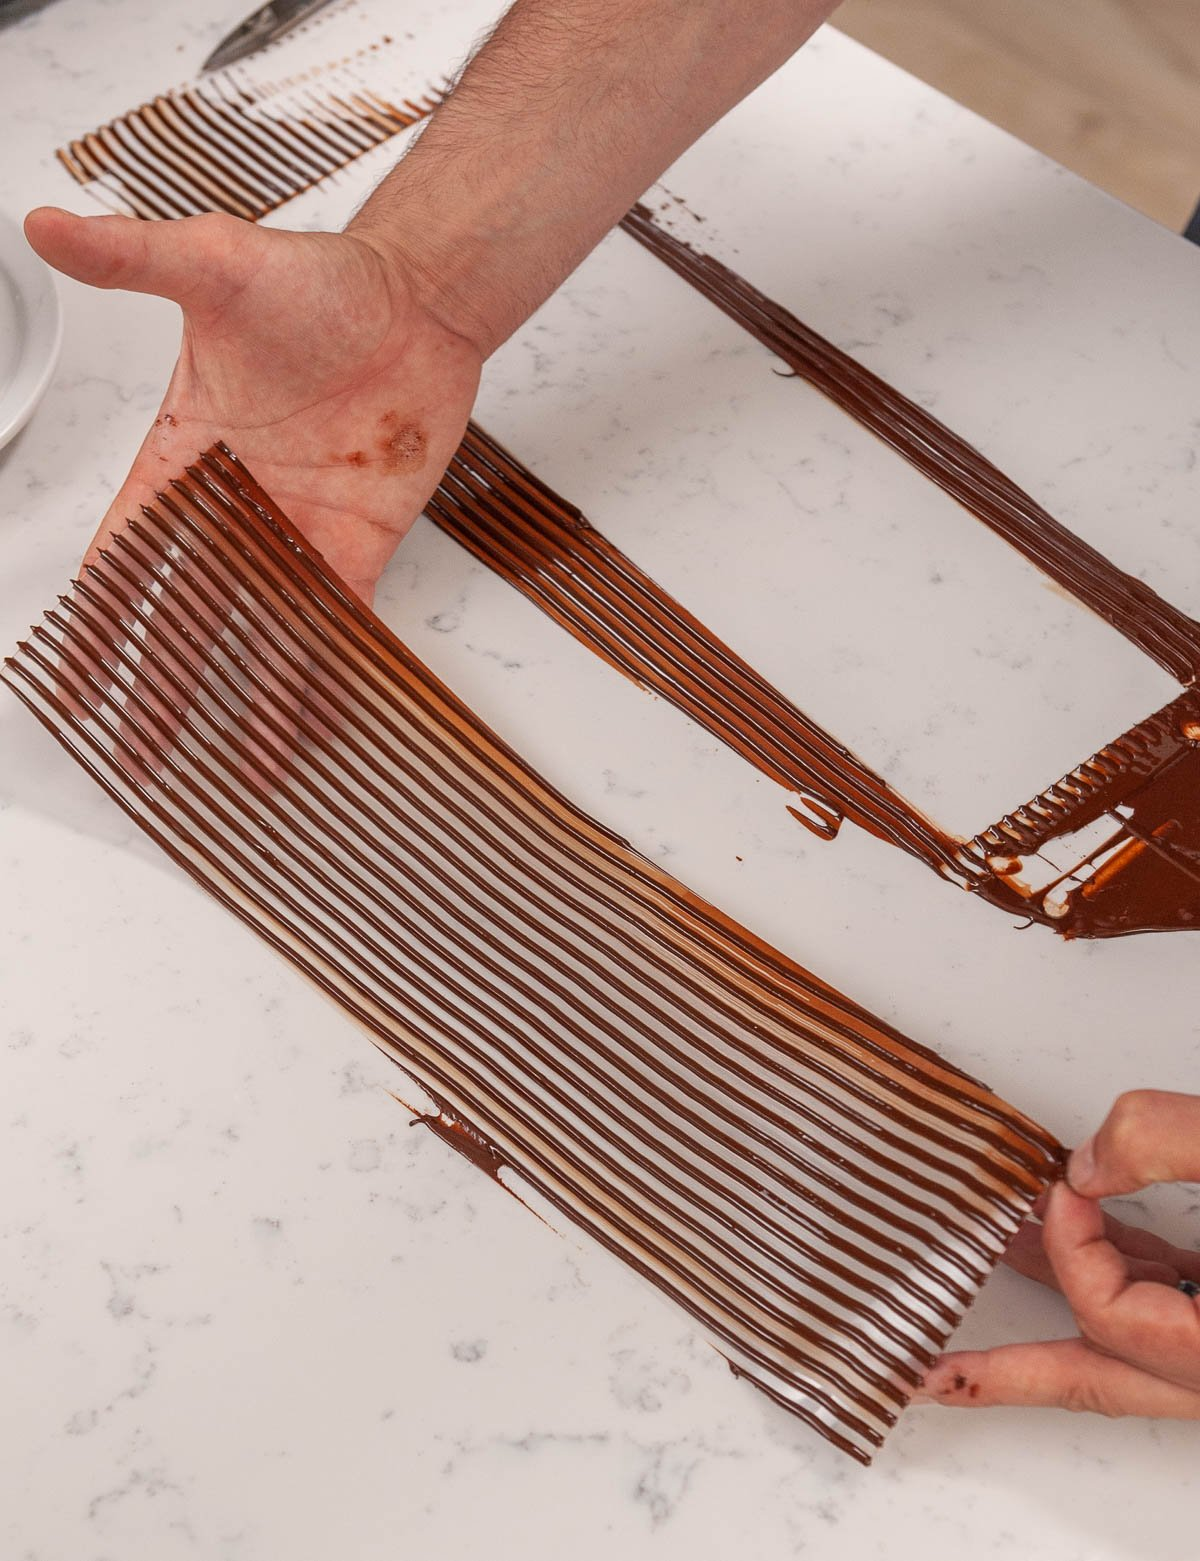 holding acetate with lines of chocolate on top